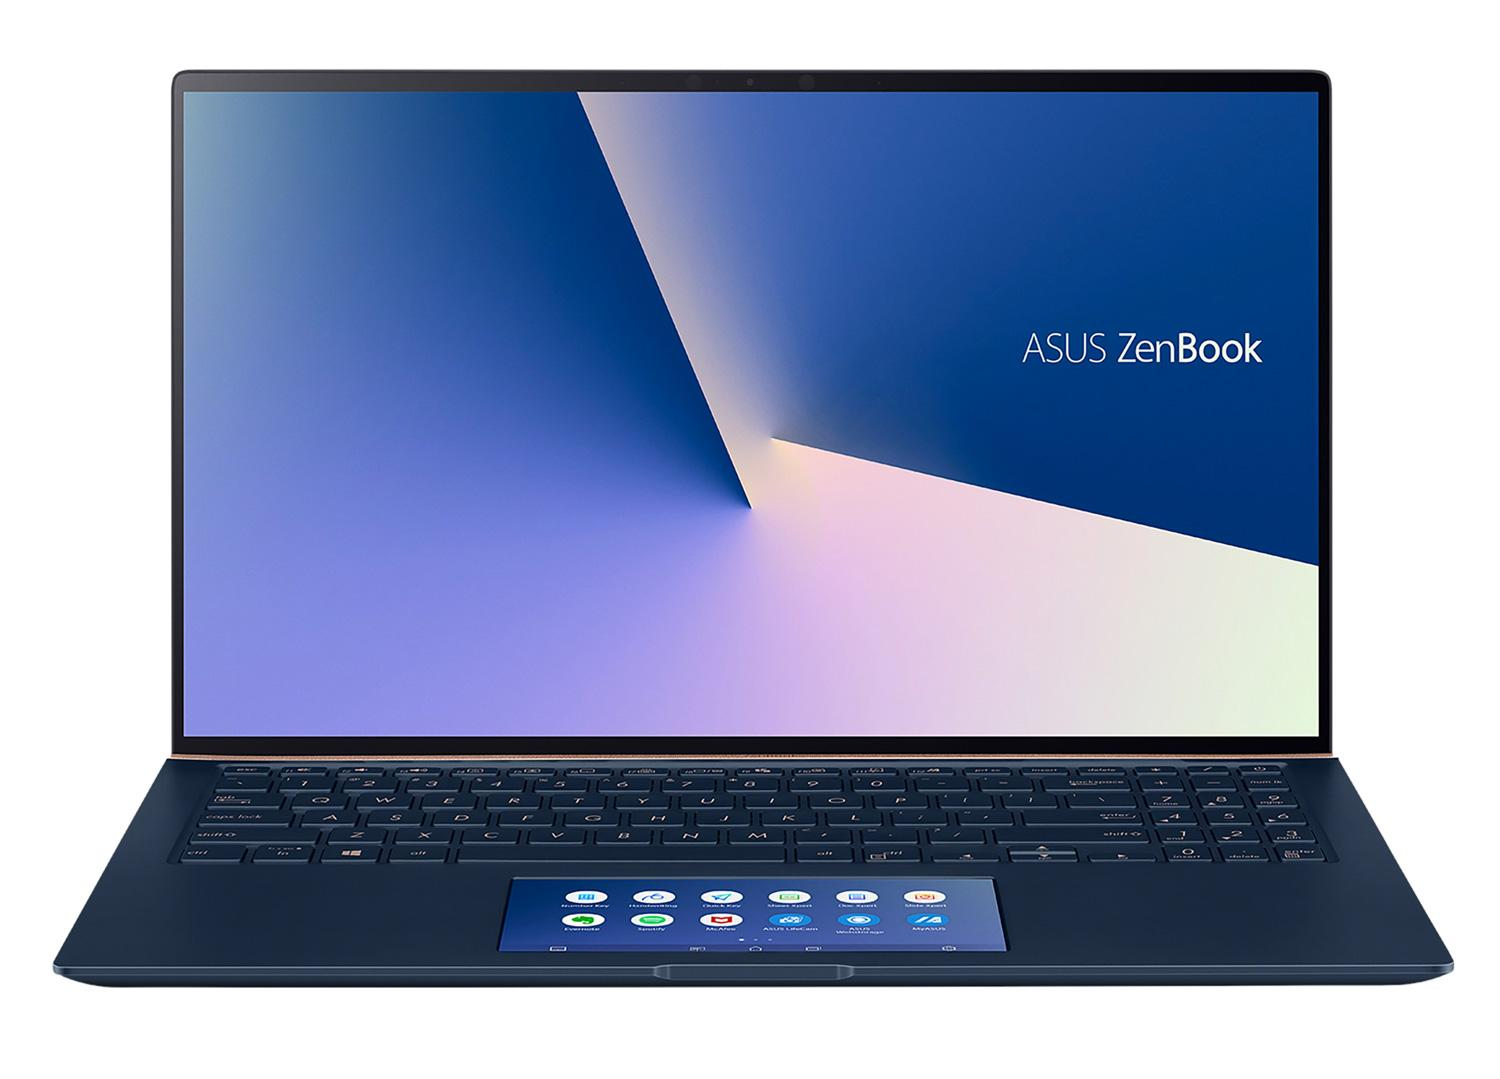 Ordinateur portable Asus ZenBook UX534FT-A9011T Bleu - GTX 1650 Max-Q, SSD 1 To, ScreenPad - photo 4